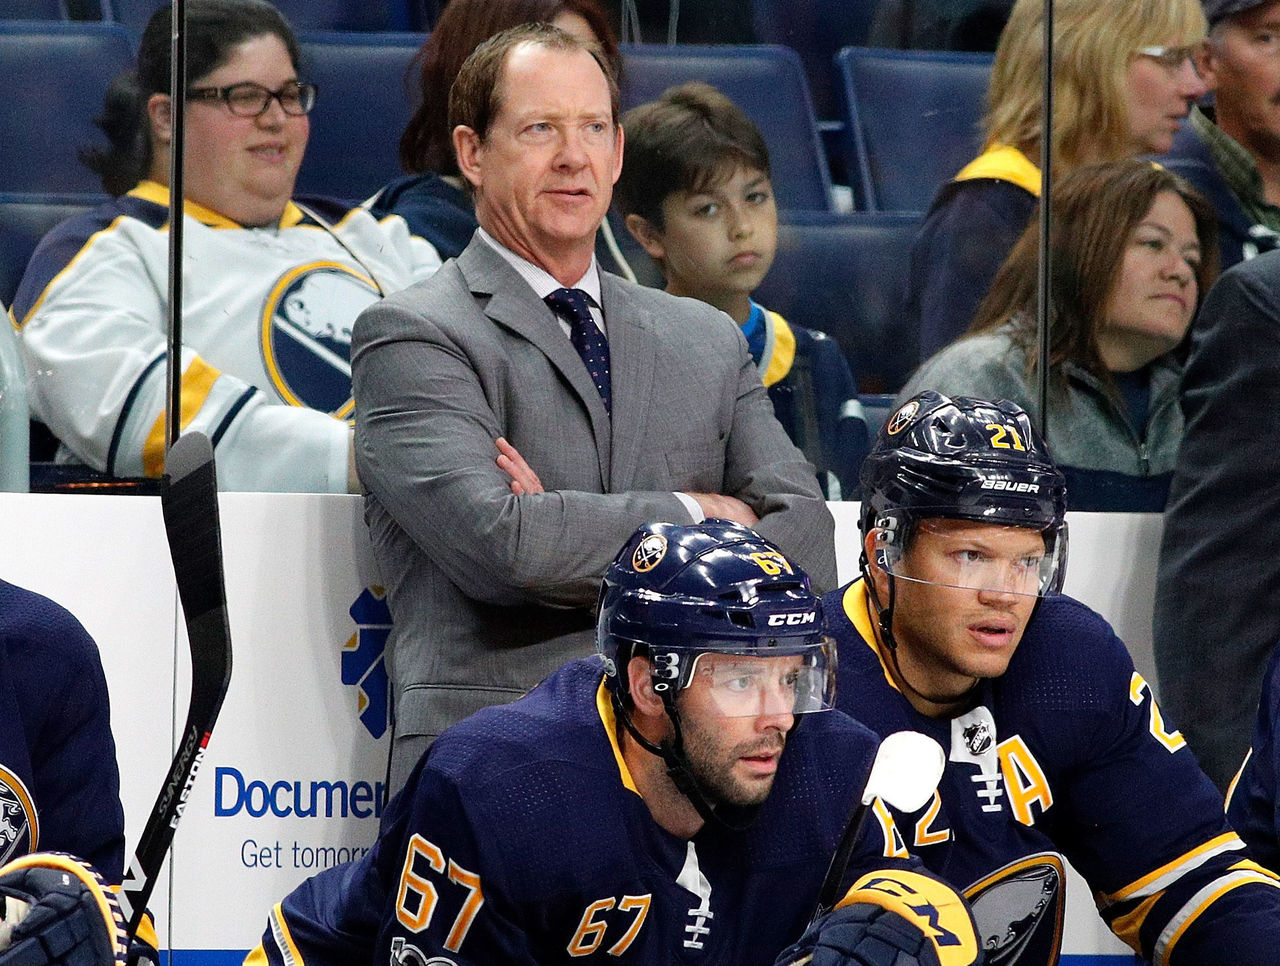 Cropped_2017-10-09t195905z_774080612_nocid_rtrmadp_3_nhl-new-jersey-devils-at-buffalo-sabres